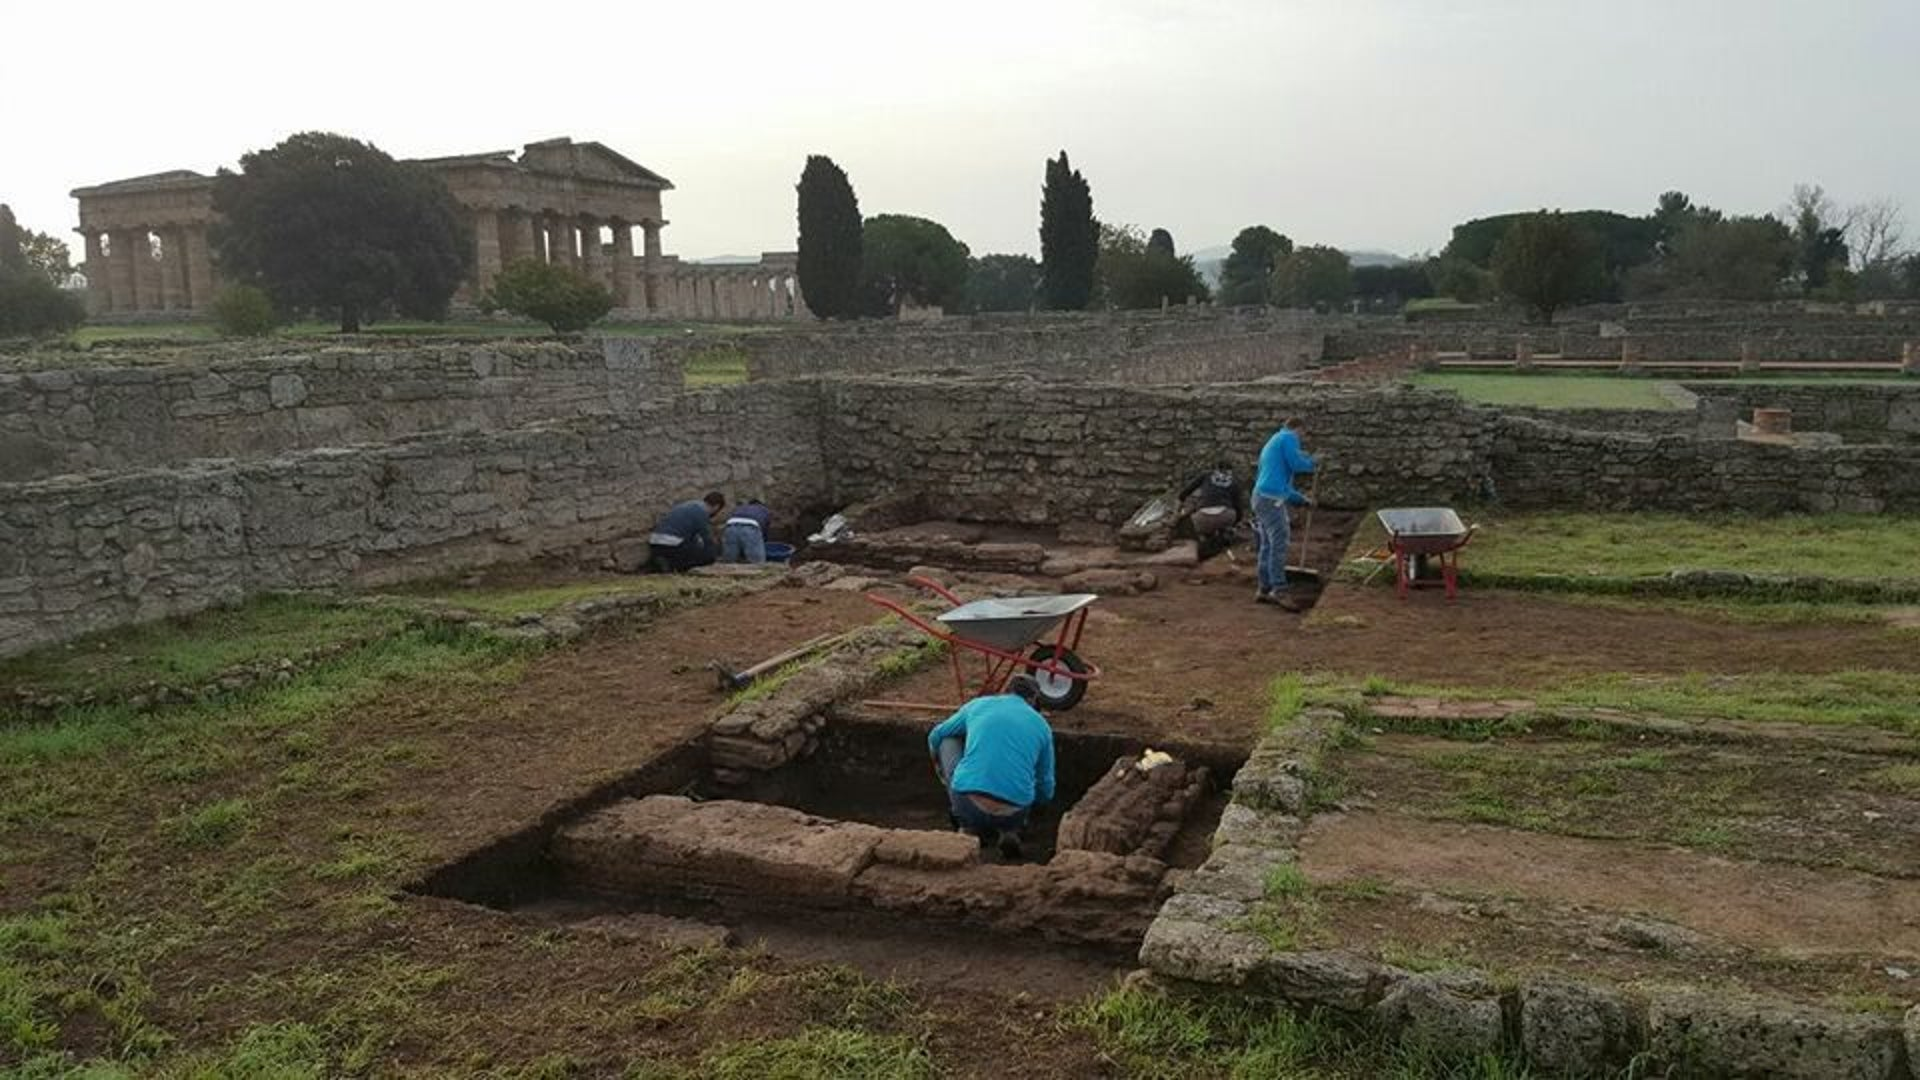 Archaeologist excavating a structure made of worked stone blocks and which is believed to date from the period when the Sybarites founded the settlement of Poseidonia in southern Italy.